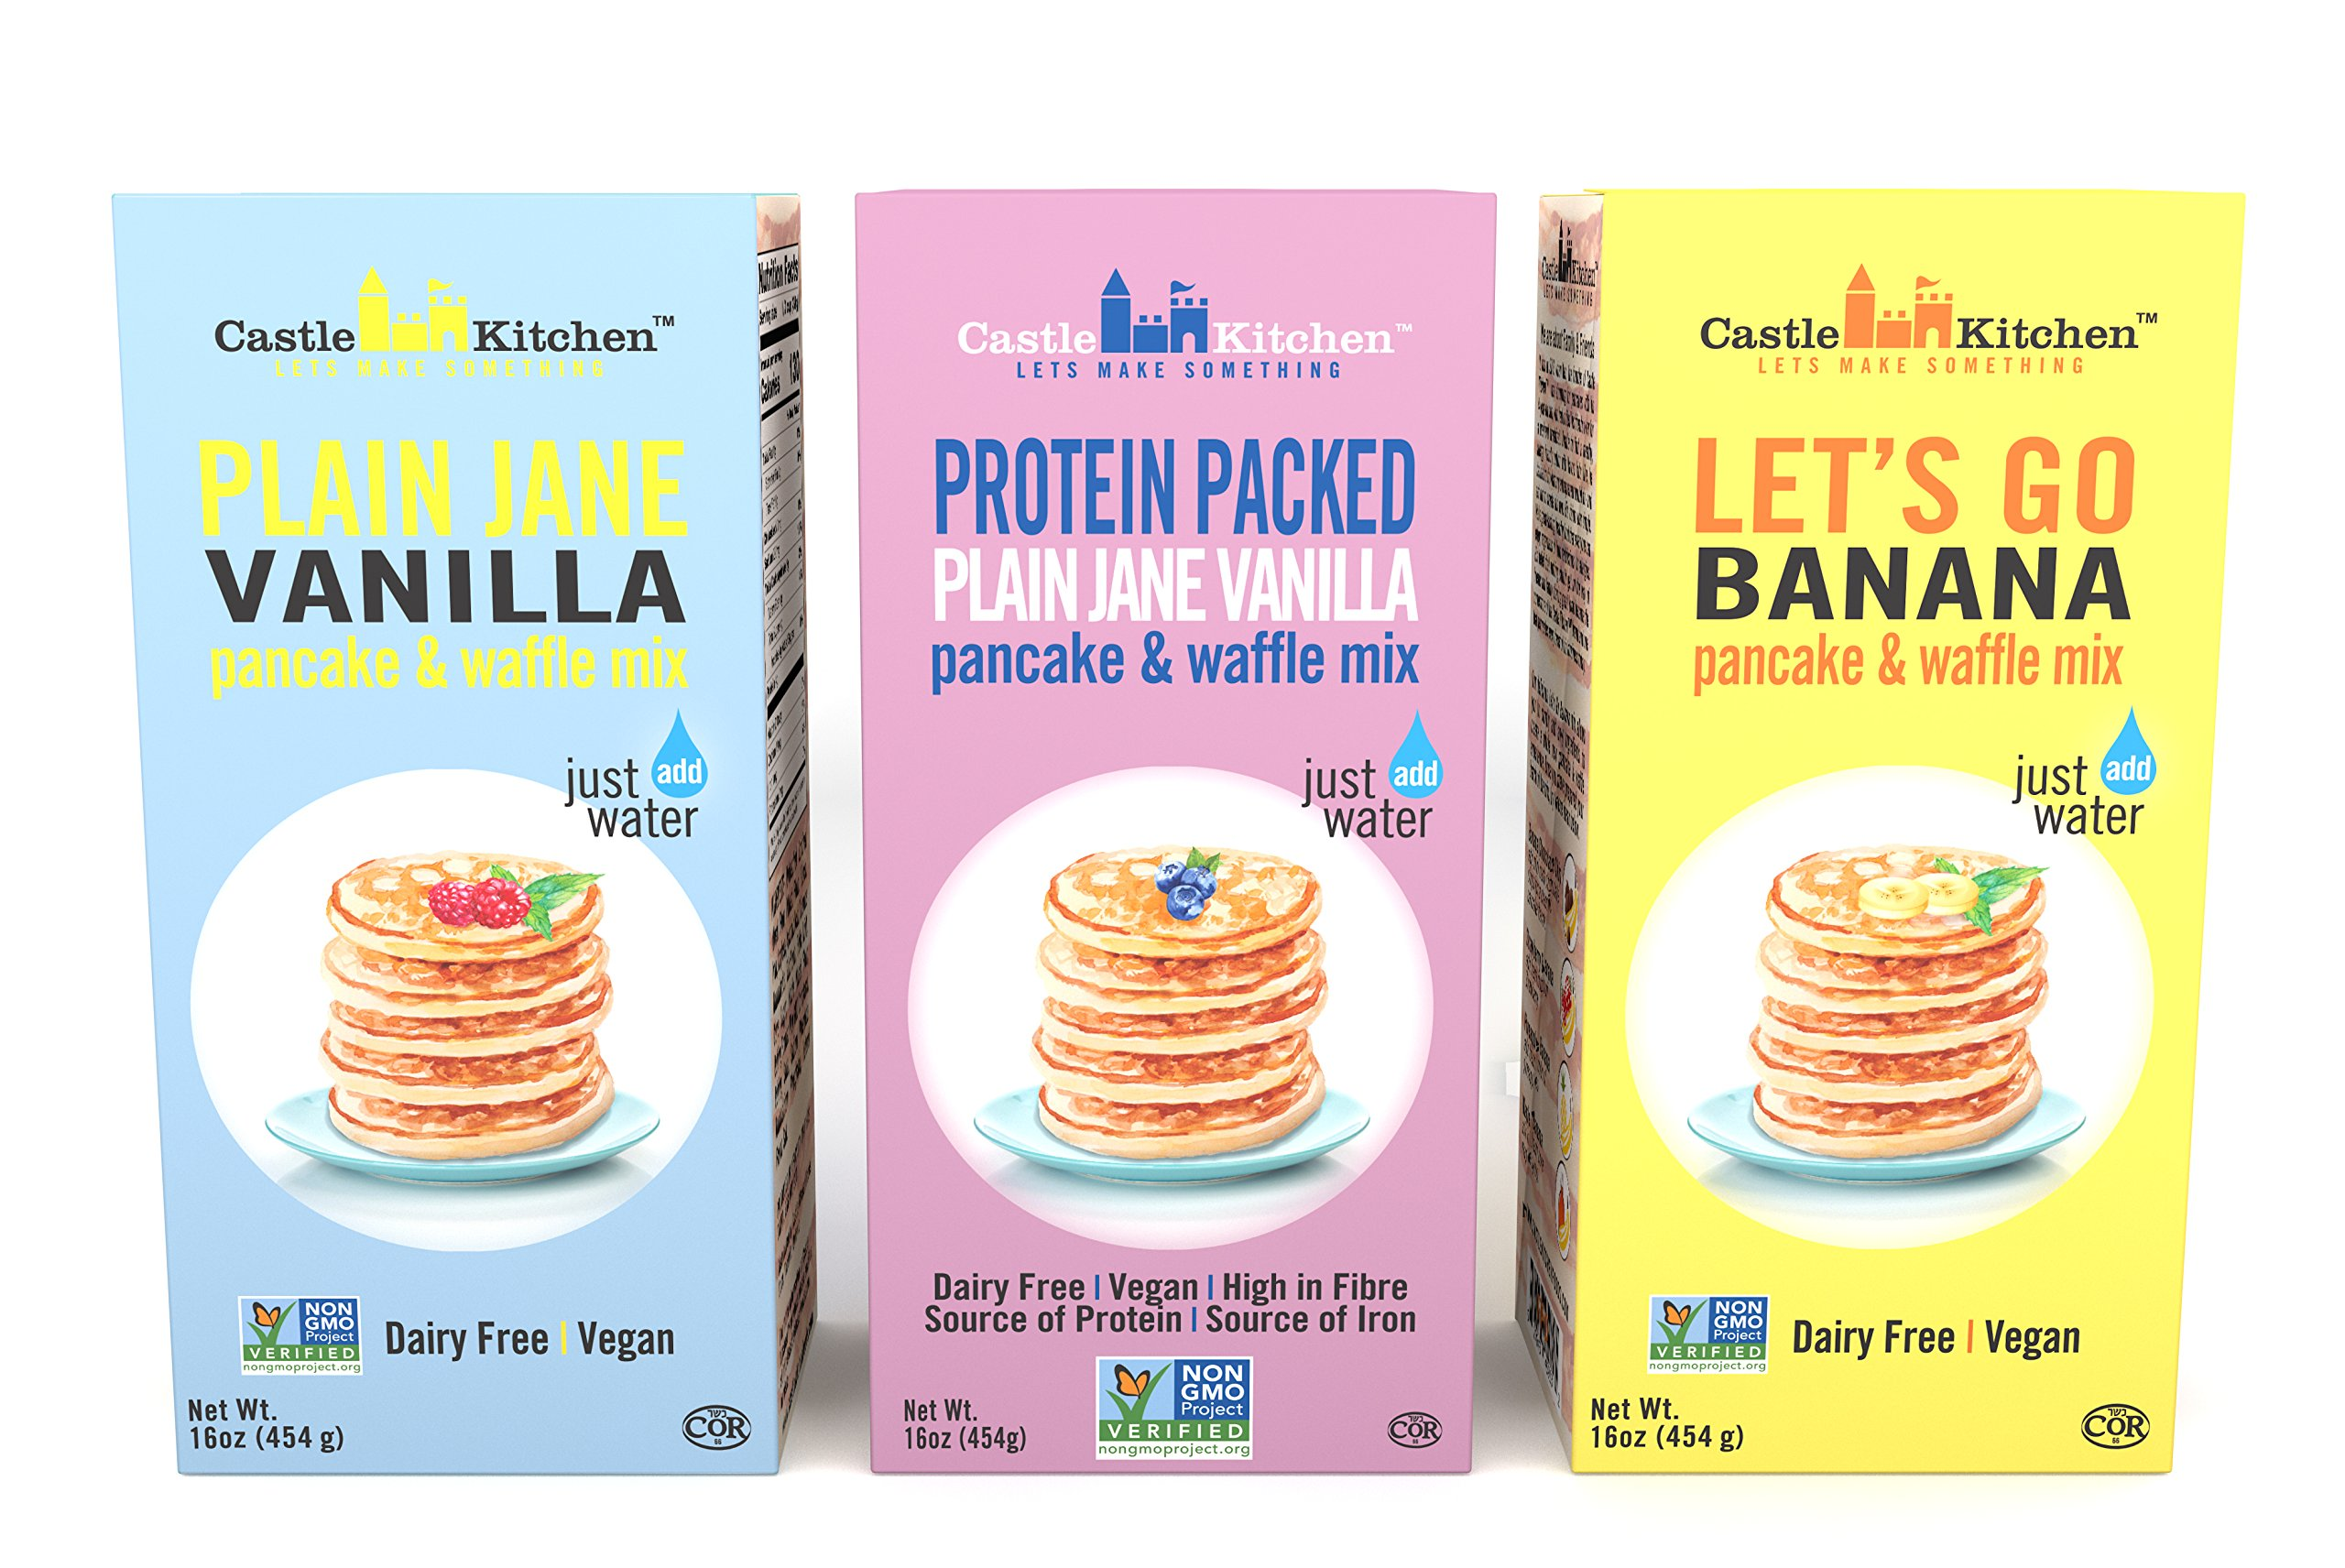 Plant-Based Pancake and Waffle Mix Variety Pack - Dairy-Free, Vegan Complete Mixes, Just Add Water - Pack of 3 Boxes (1 of Each - Protein-Packed Vanilla, Plain Jane Vanilla, Banana) 16 oz Each